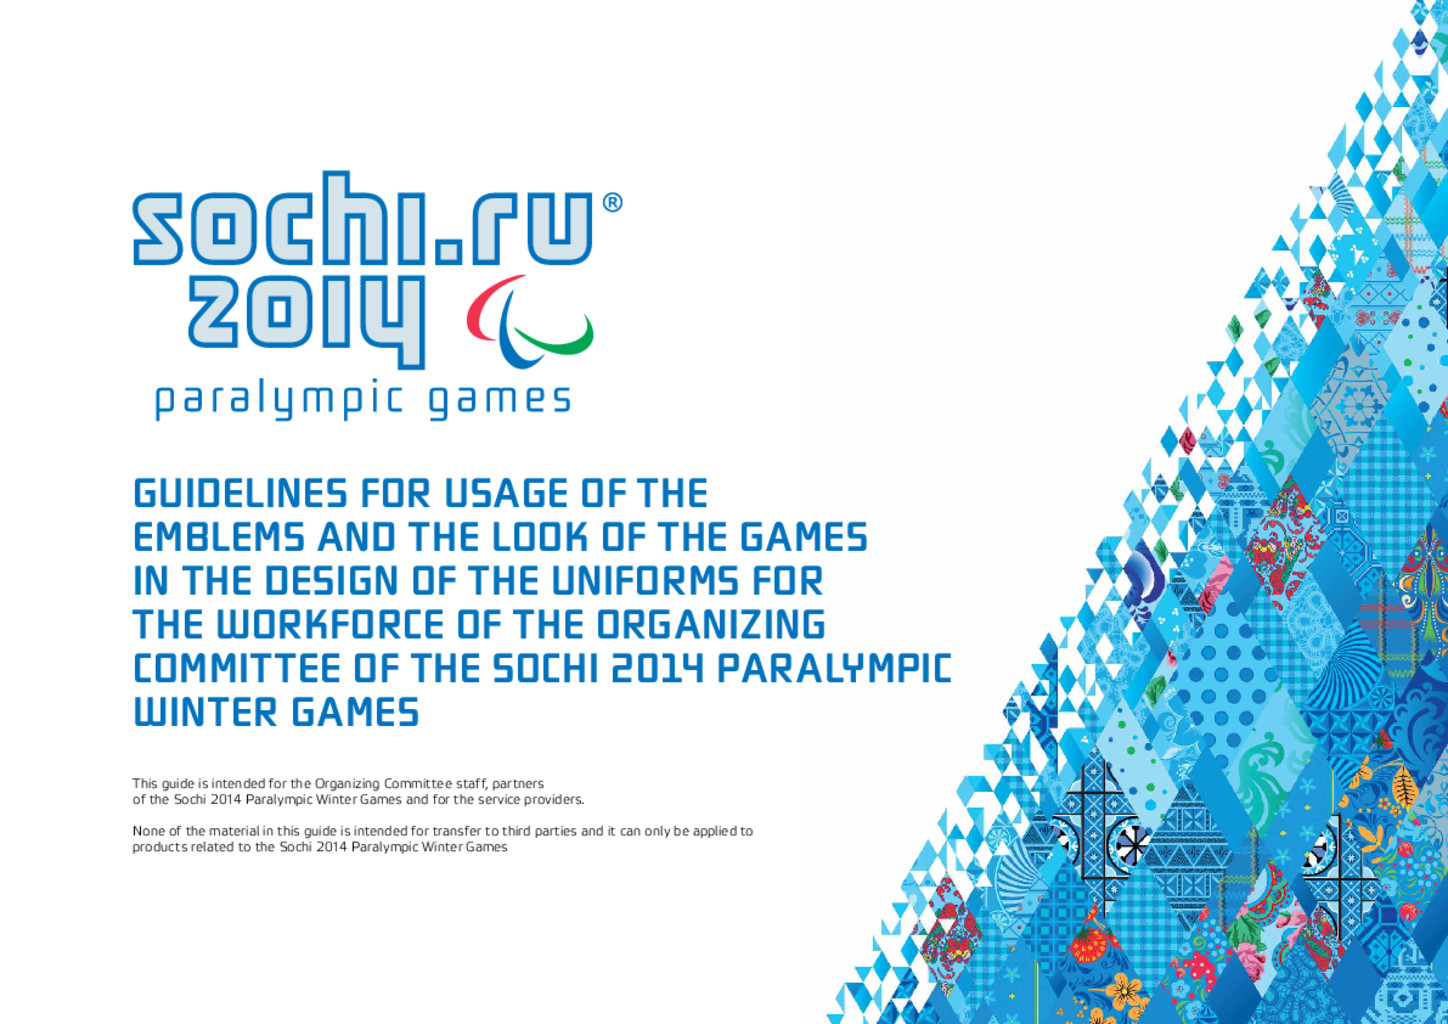 Guidelines for usage of the emblems and the look of the Games in the design of the uniforms for the work force of the Organizing Committee of the Sochi 2014 Paralympic Winter Games / Organizing Committee of XXII Olympic Winter Games and XI Paralympic Winter Games 2014 in Sochi | Olympic Winter Games. Organizing Committee. 22, 2014, Sochi